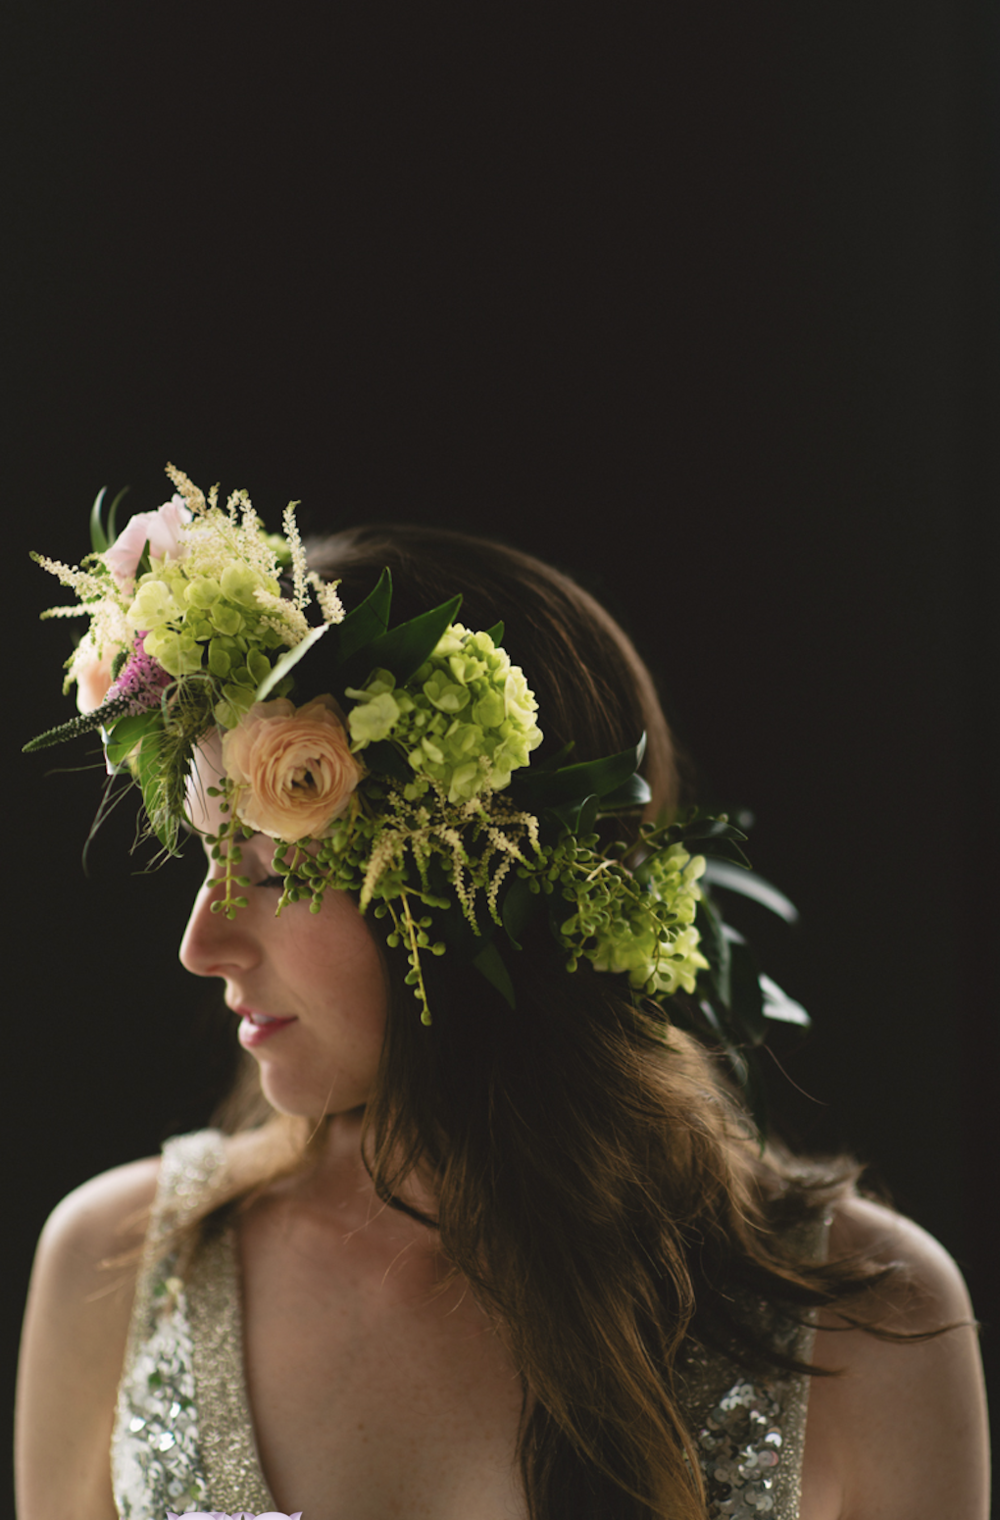 Organic flower crown on bride.